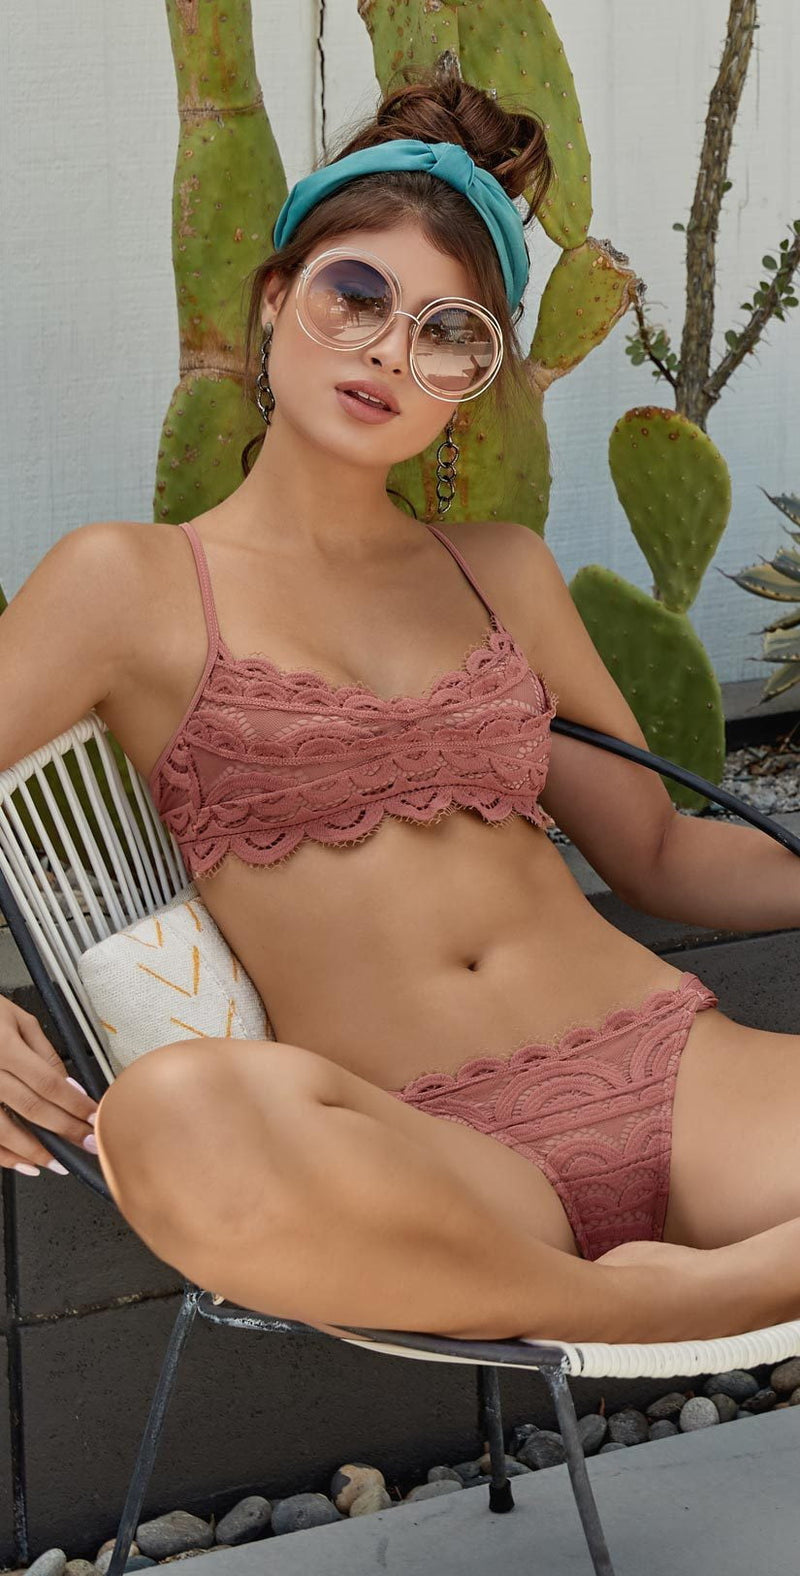 PilyQ Dusty Rose Lace Fanned Teeny Bottom DUS-251T: